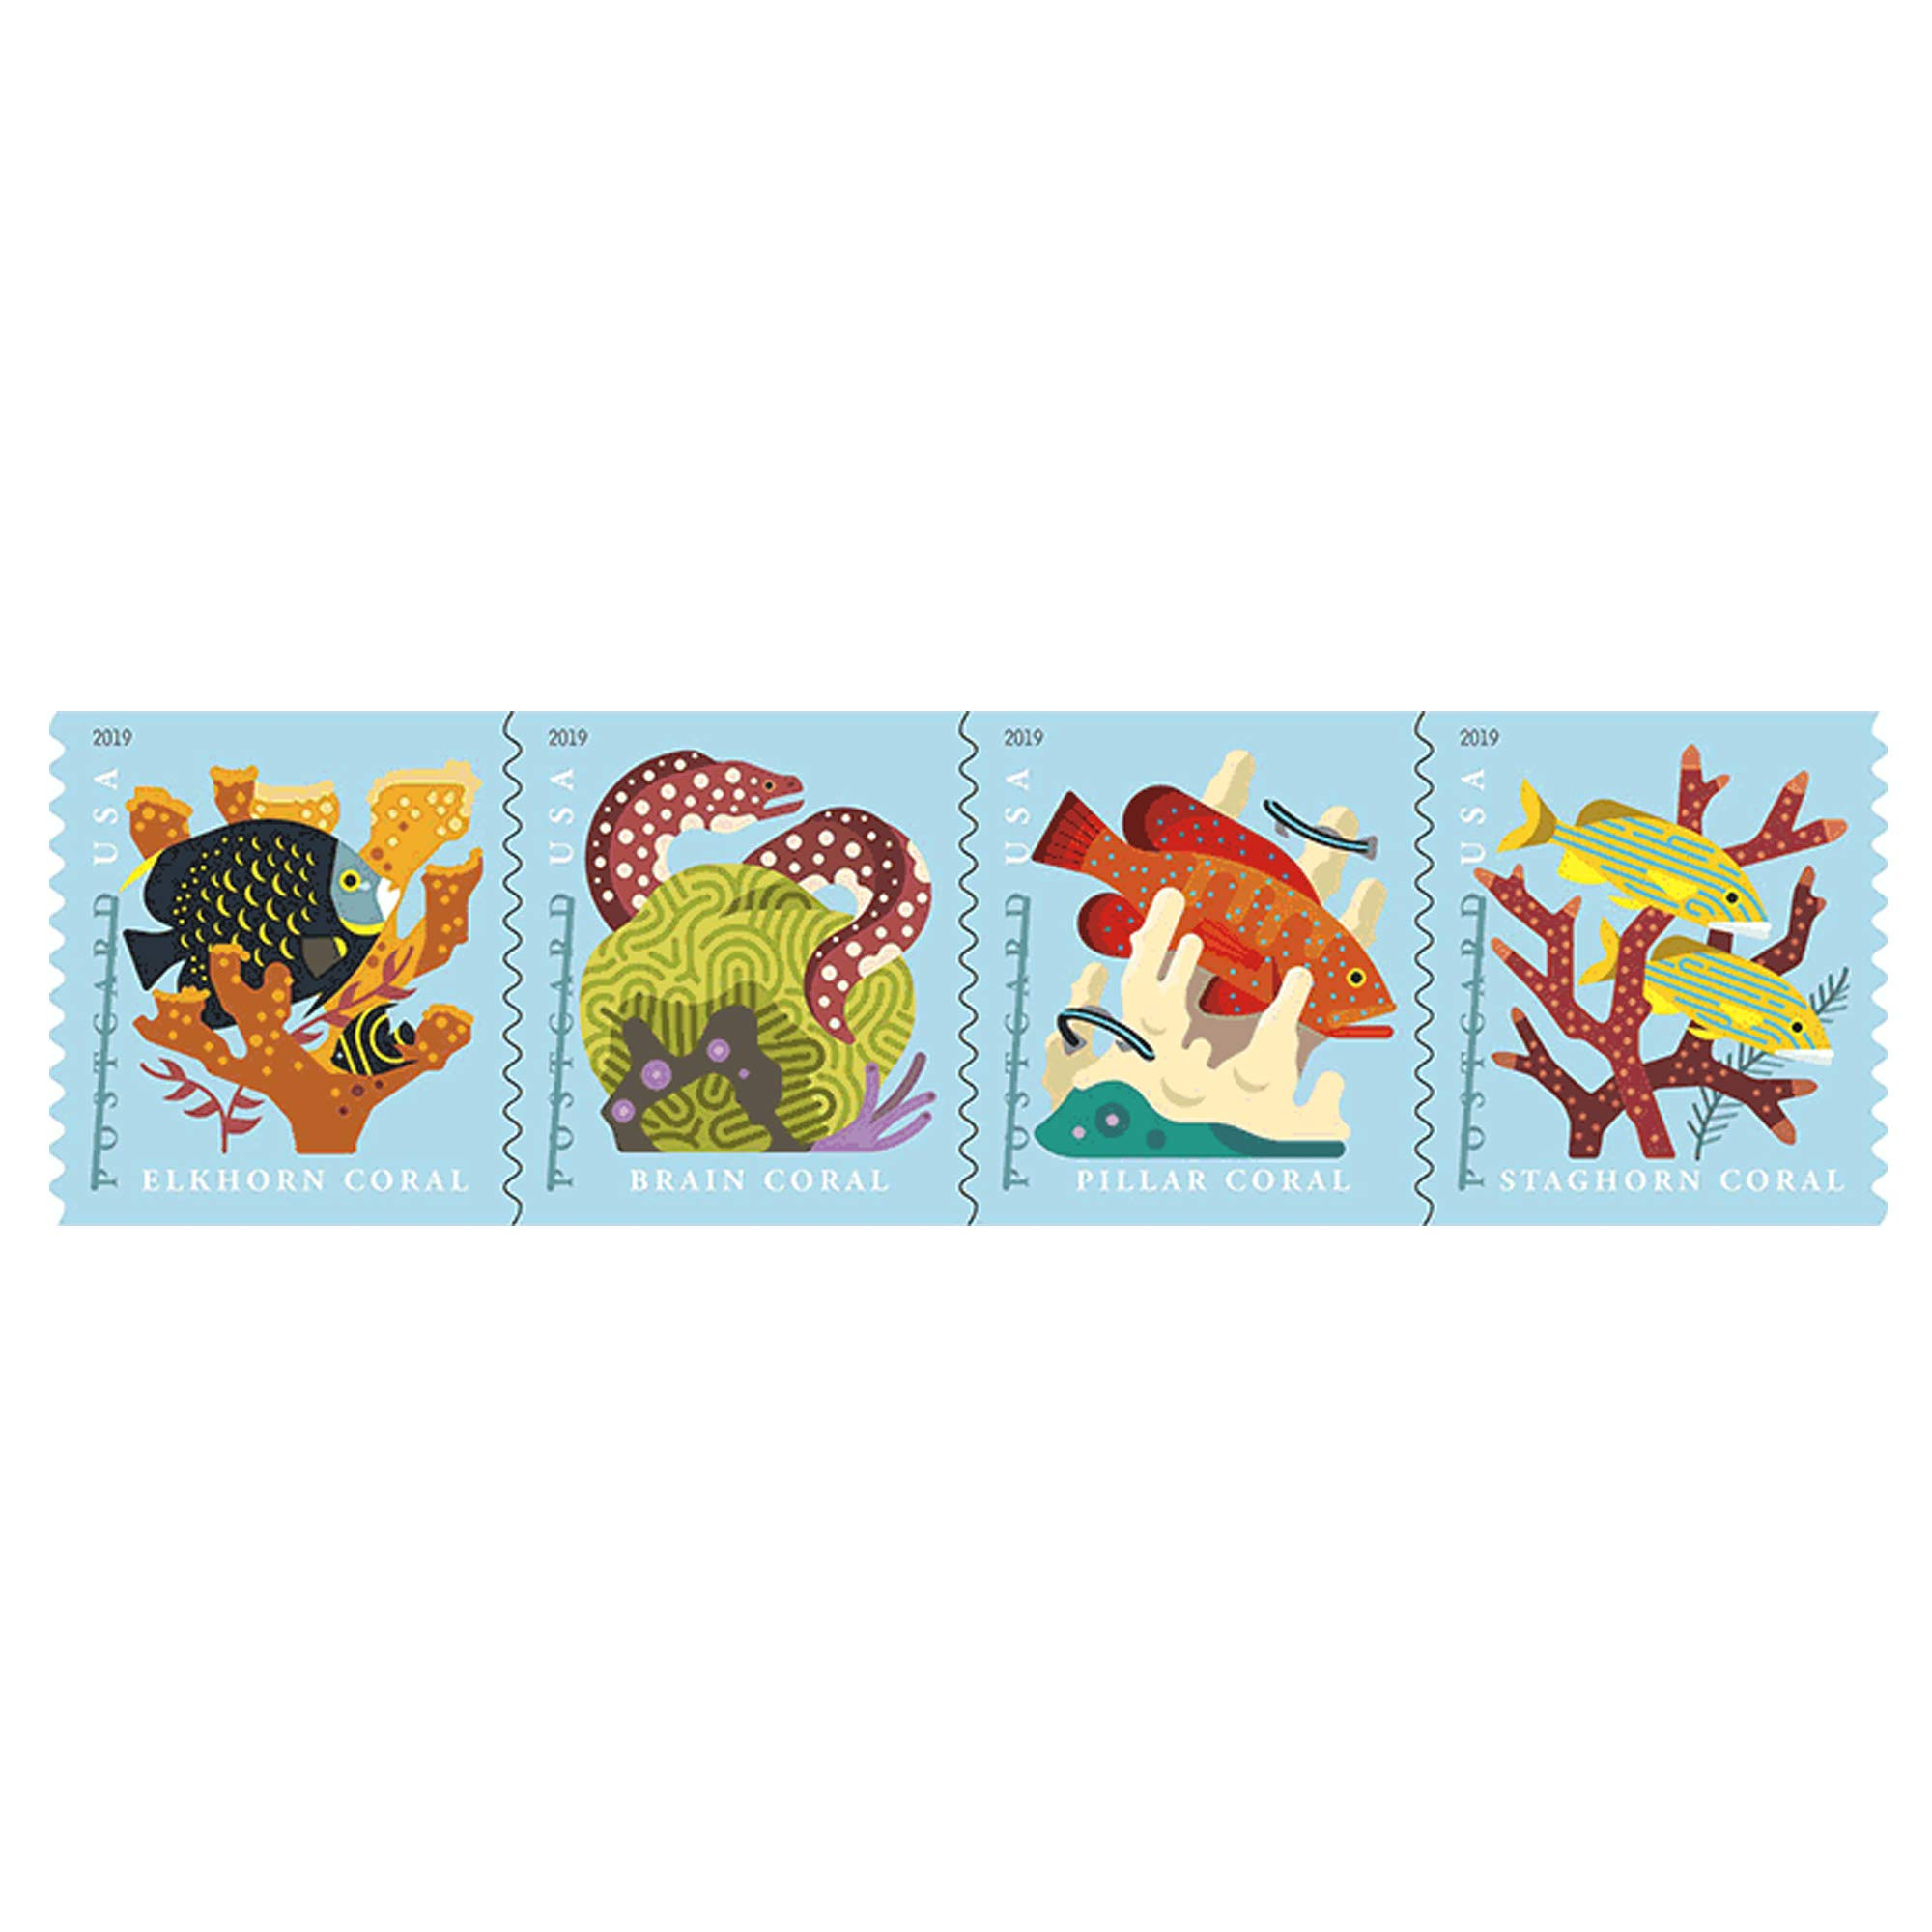 Coral Reefs Postcard Coil of 100 USPS First Class Forever Postcard Postage Stamps Sea (100 Stamps)